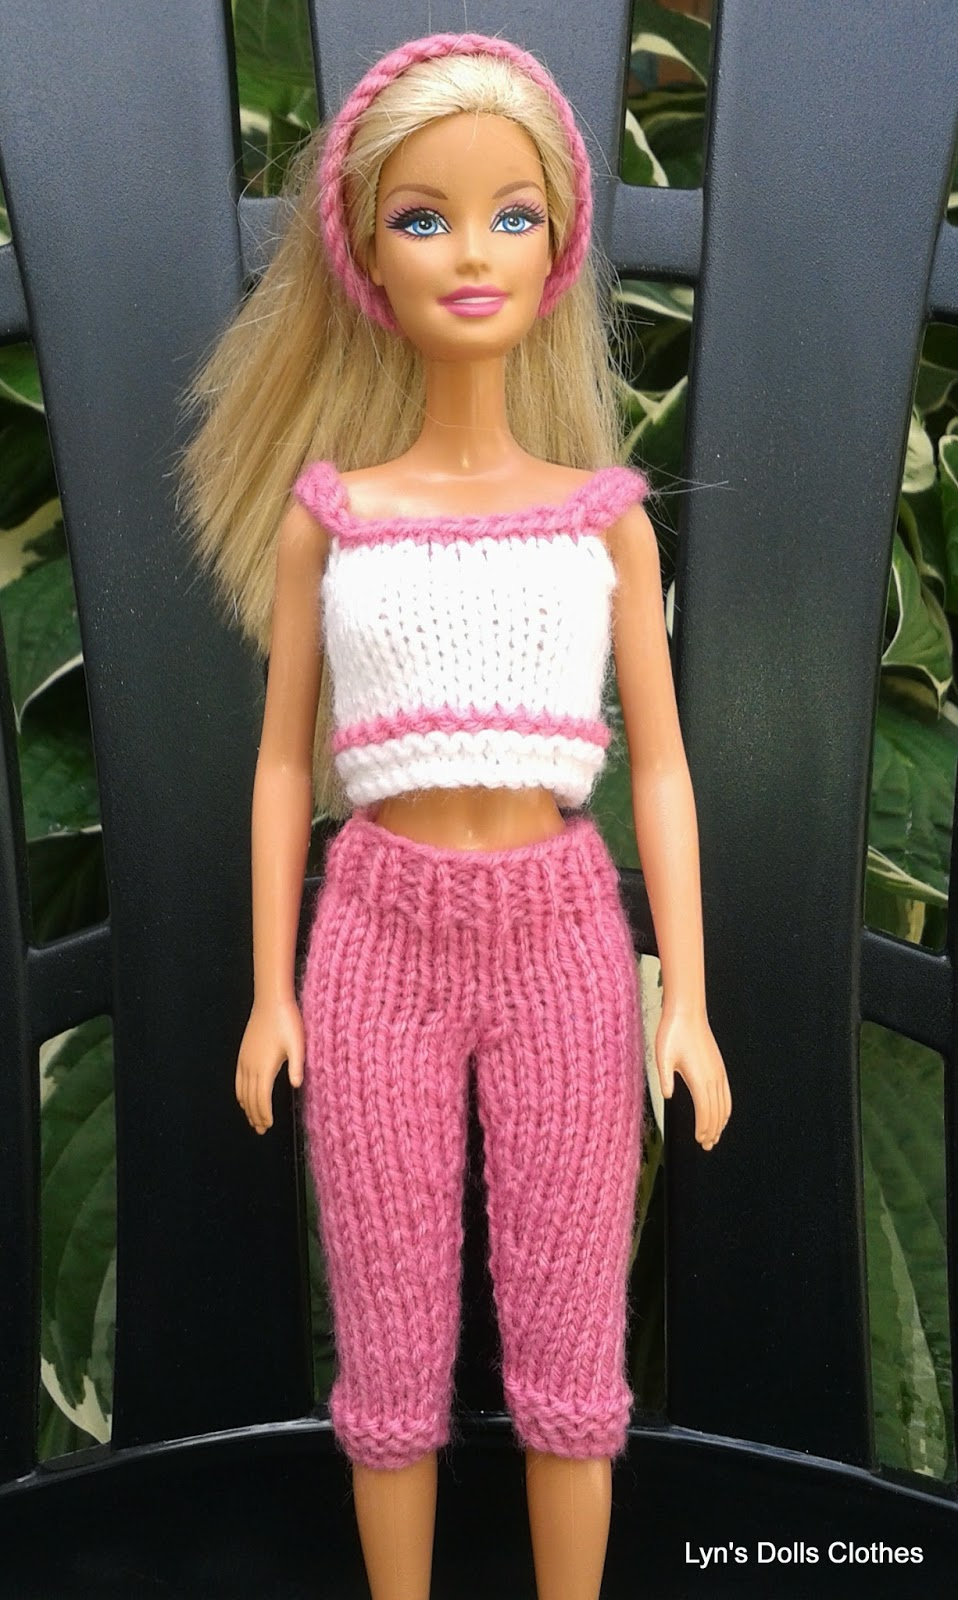 Linmary Knits: Barbie knitted capri pants and cropped top